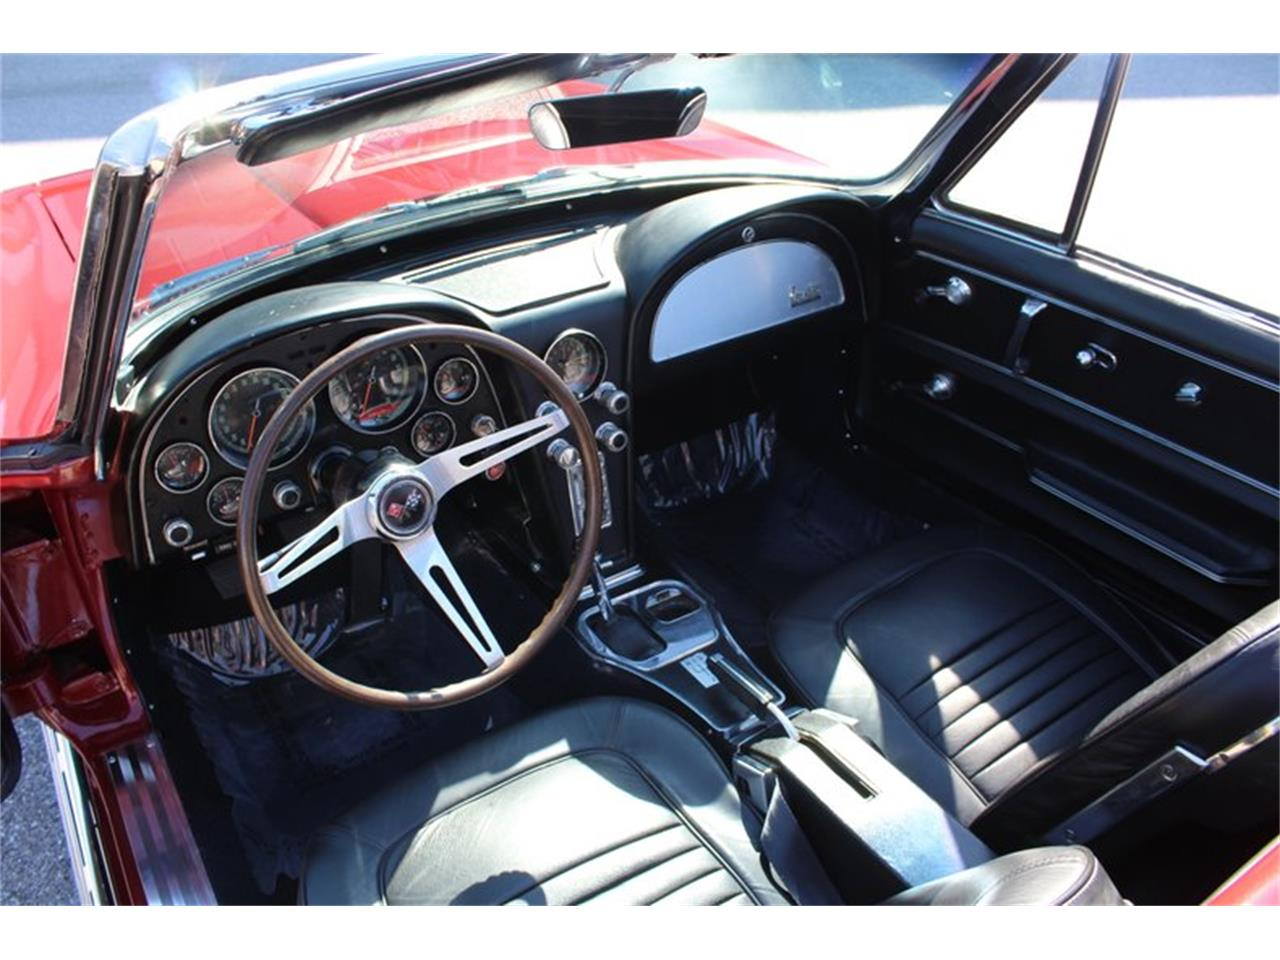 Large Picture of 1967 Corvette Stingray located in Florida - $54,900.00 Offered by Classic Cars of Sarasota - PVTL